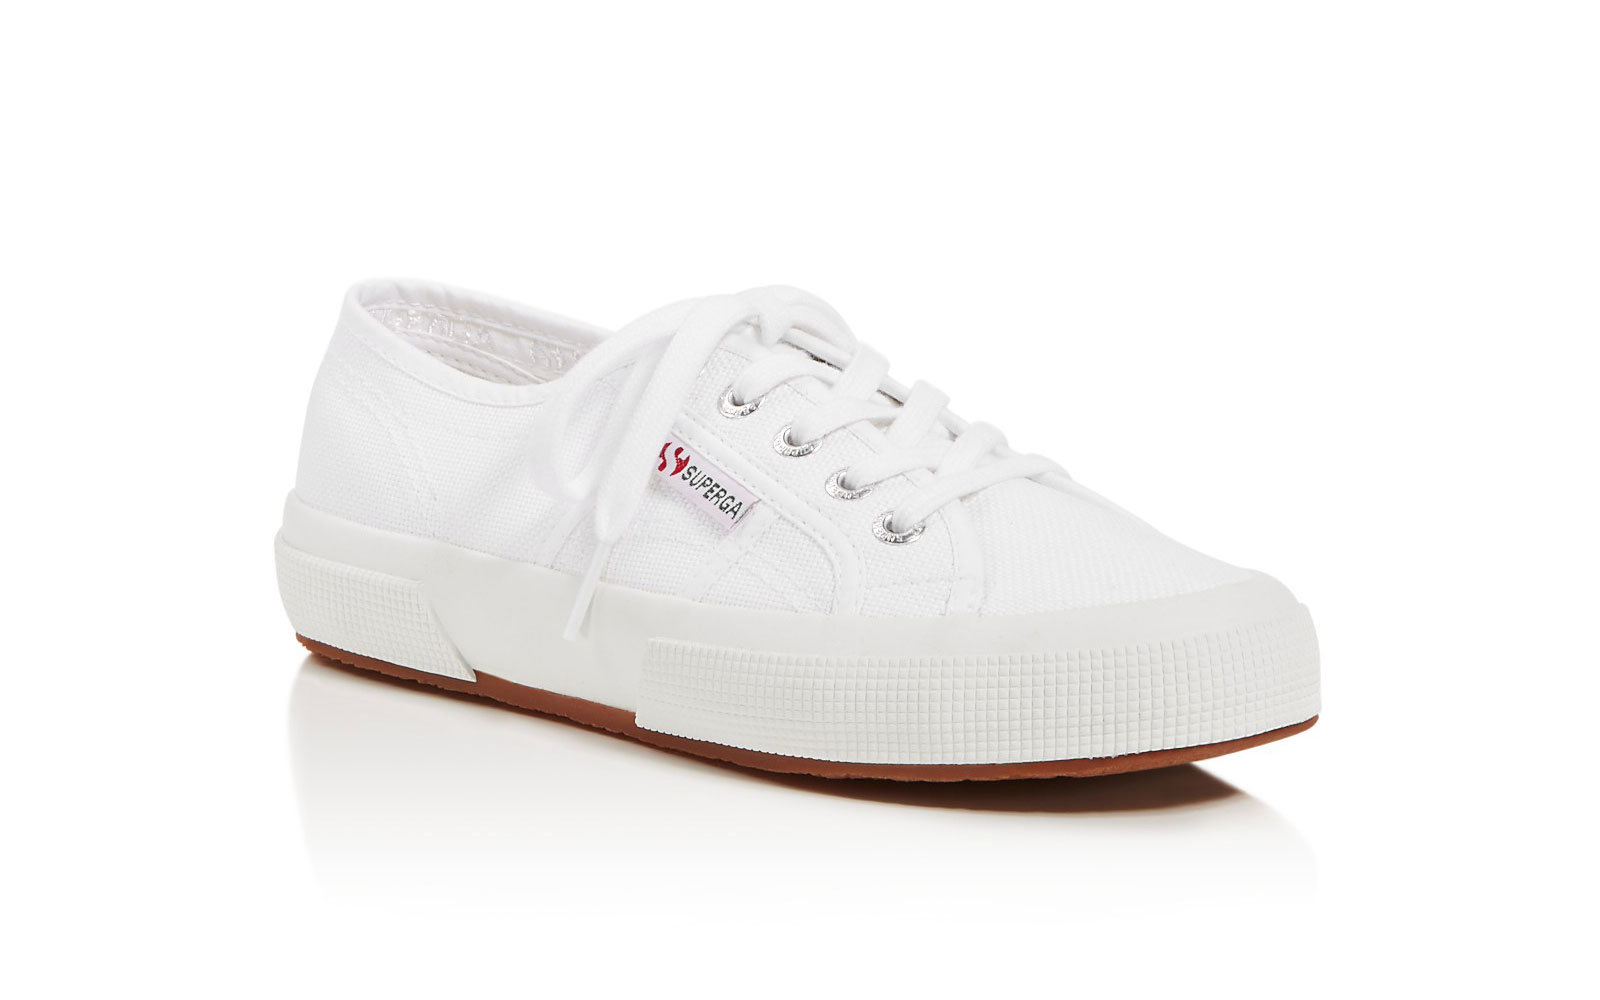 Superga white sneakers